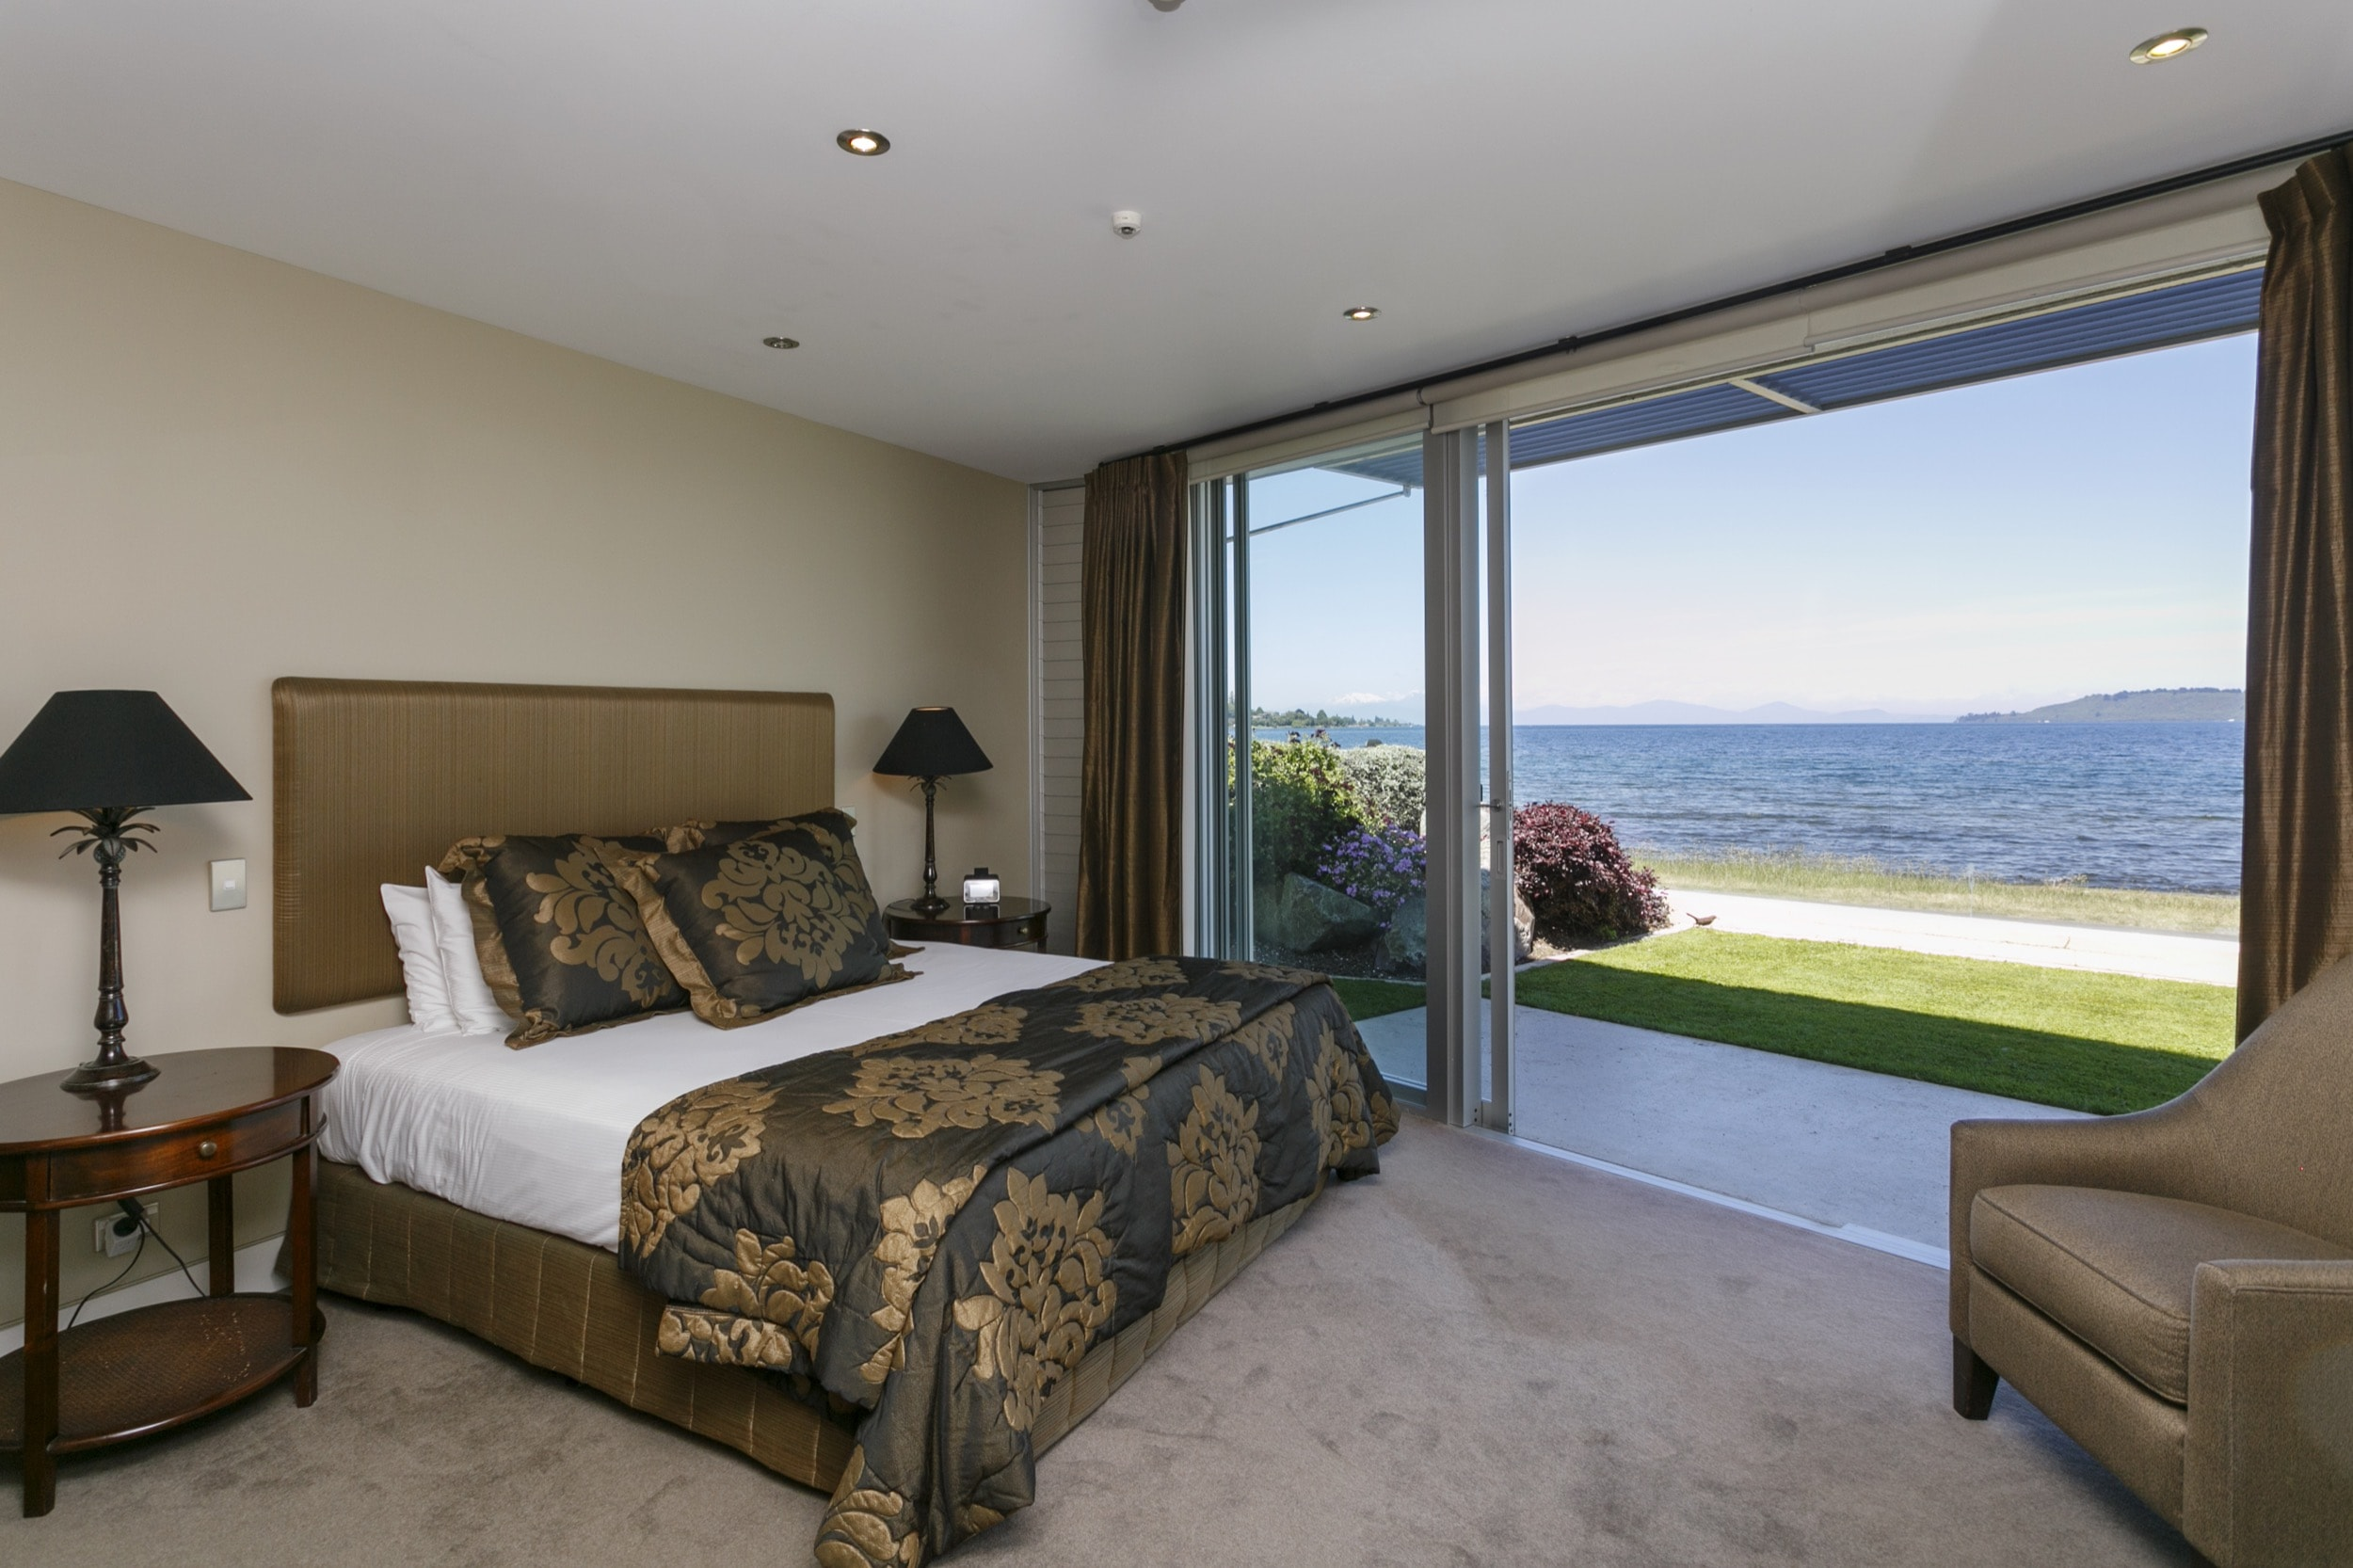 Ground floor two bedroom apartment master bedroom looking out onto lakefront view.jpg